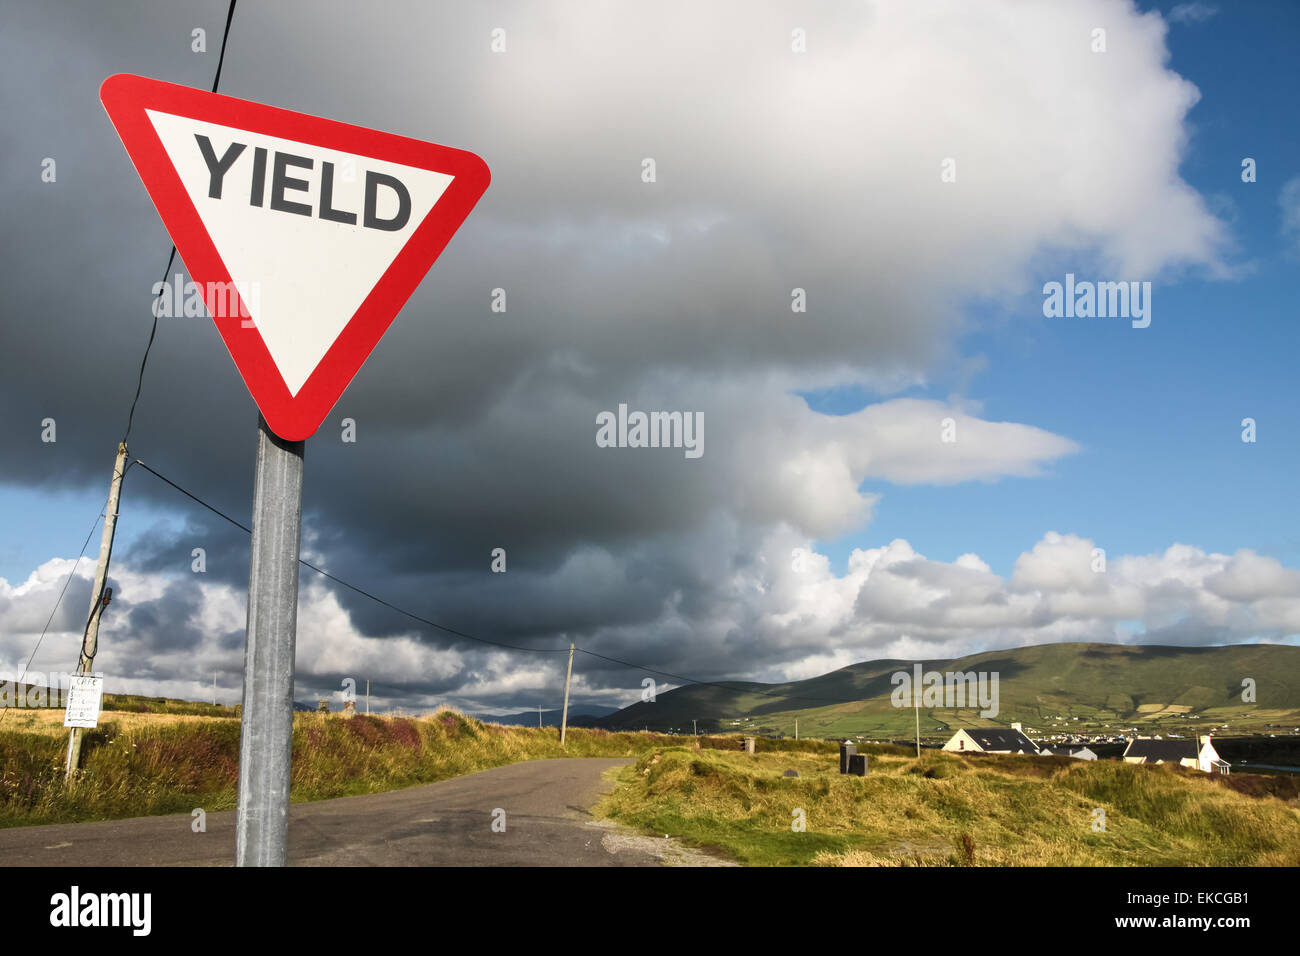 Give way sign with dark clouds in Ireland - Stock Image